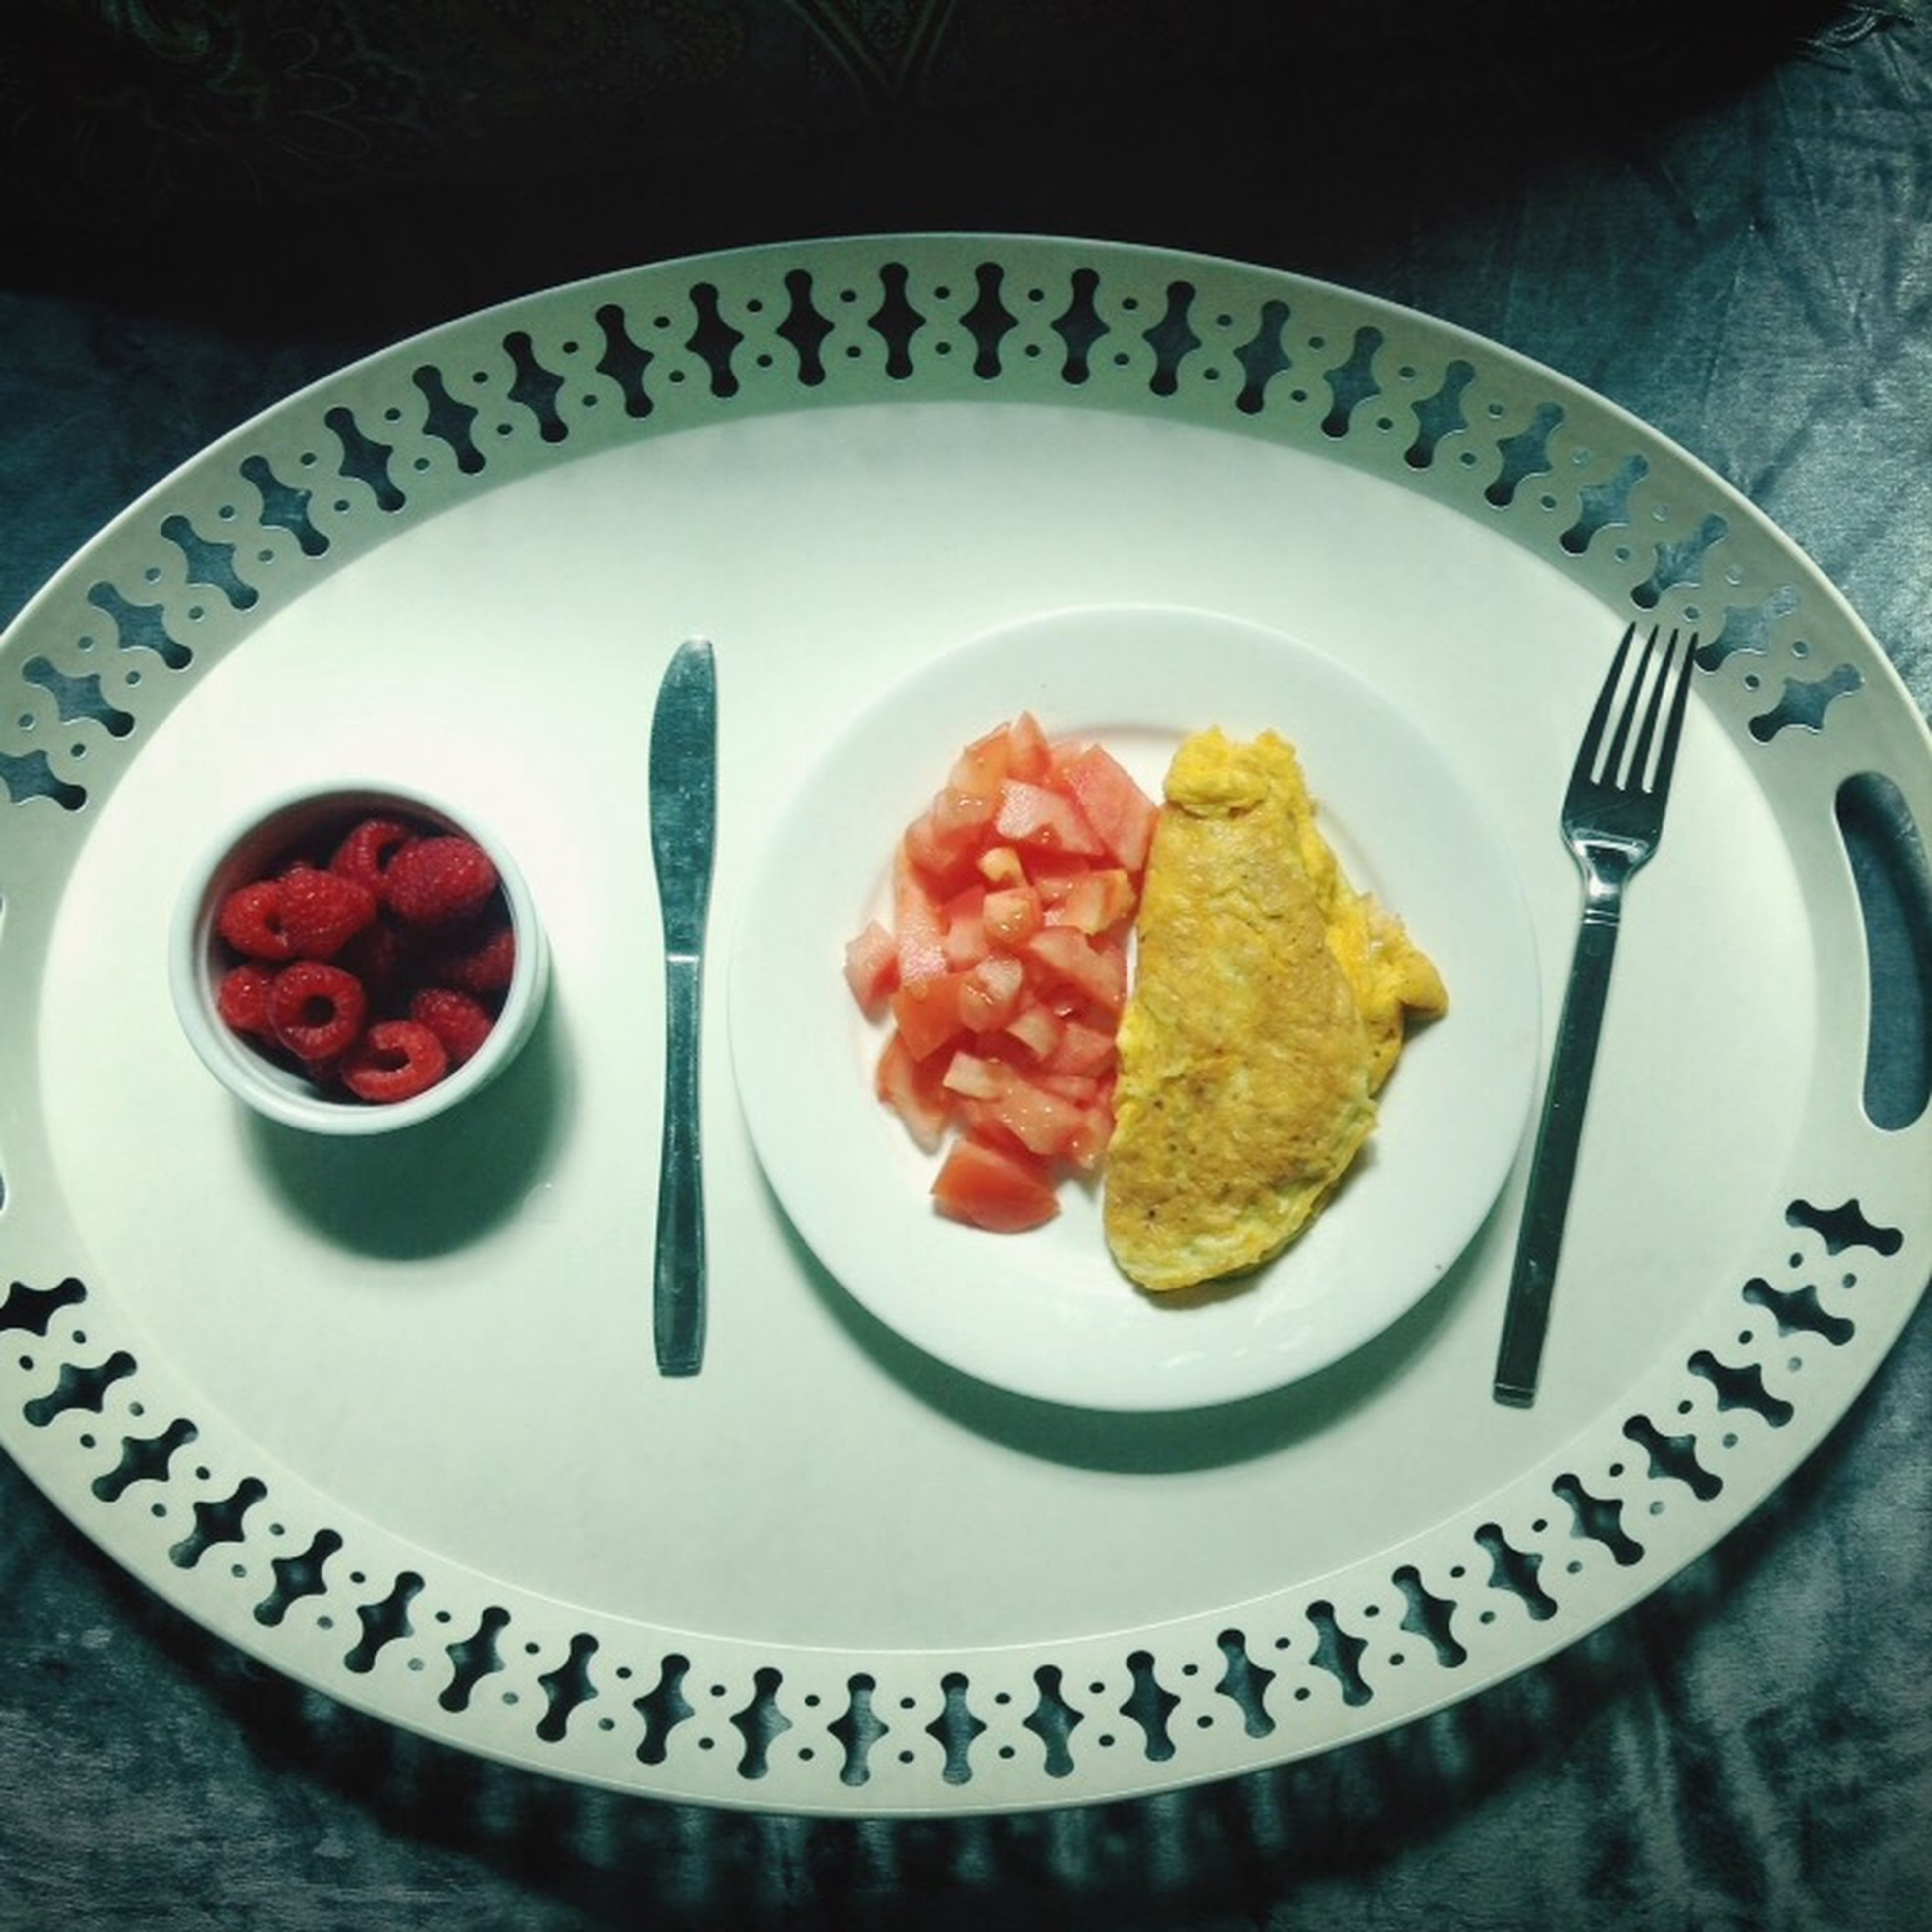 food and drink, food, indoors, plate, freshness, ready-to-eat, still life, table, indulgence, high angle view, serving size, sweet food, bowl, directly above, unhealthy eating, meal, breakfast, dessert, close-up